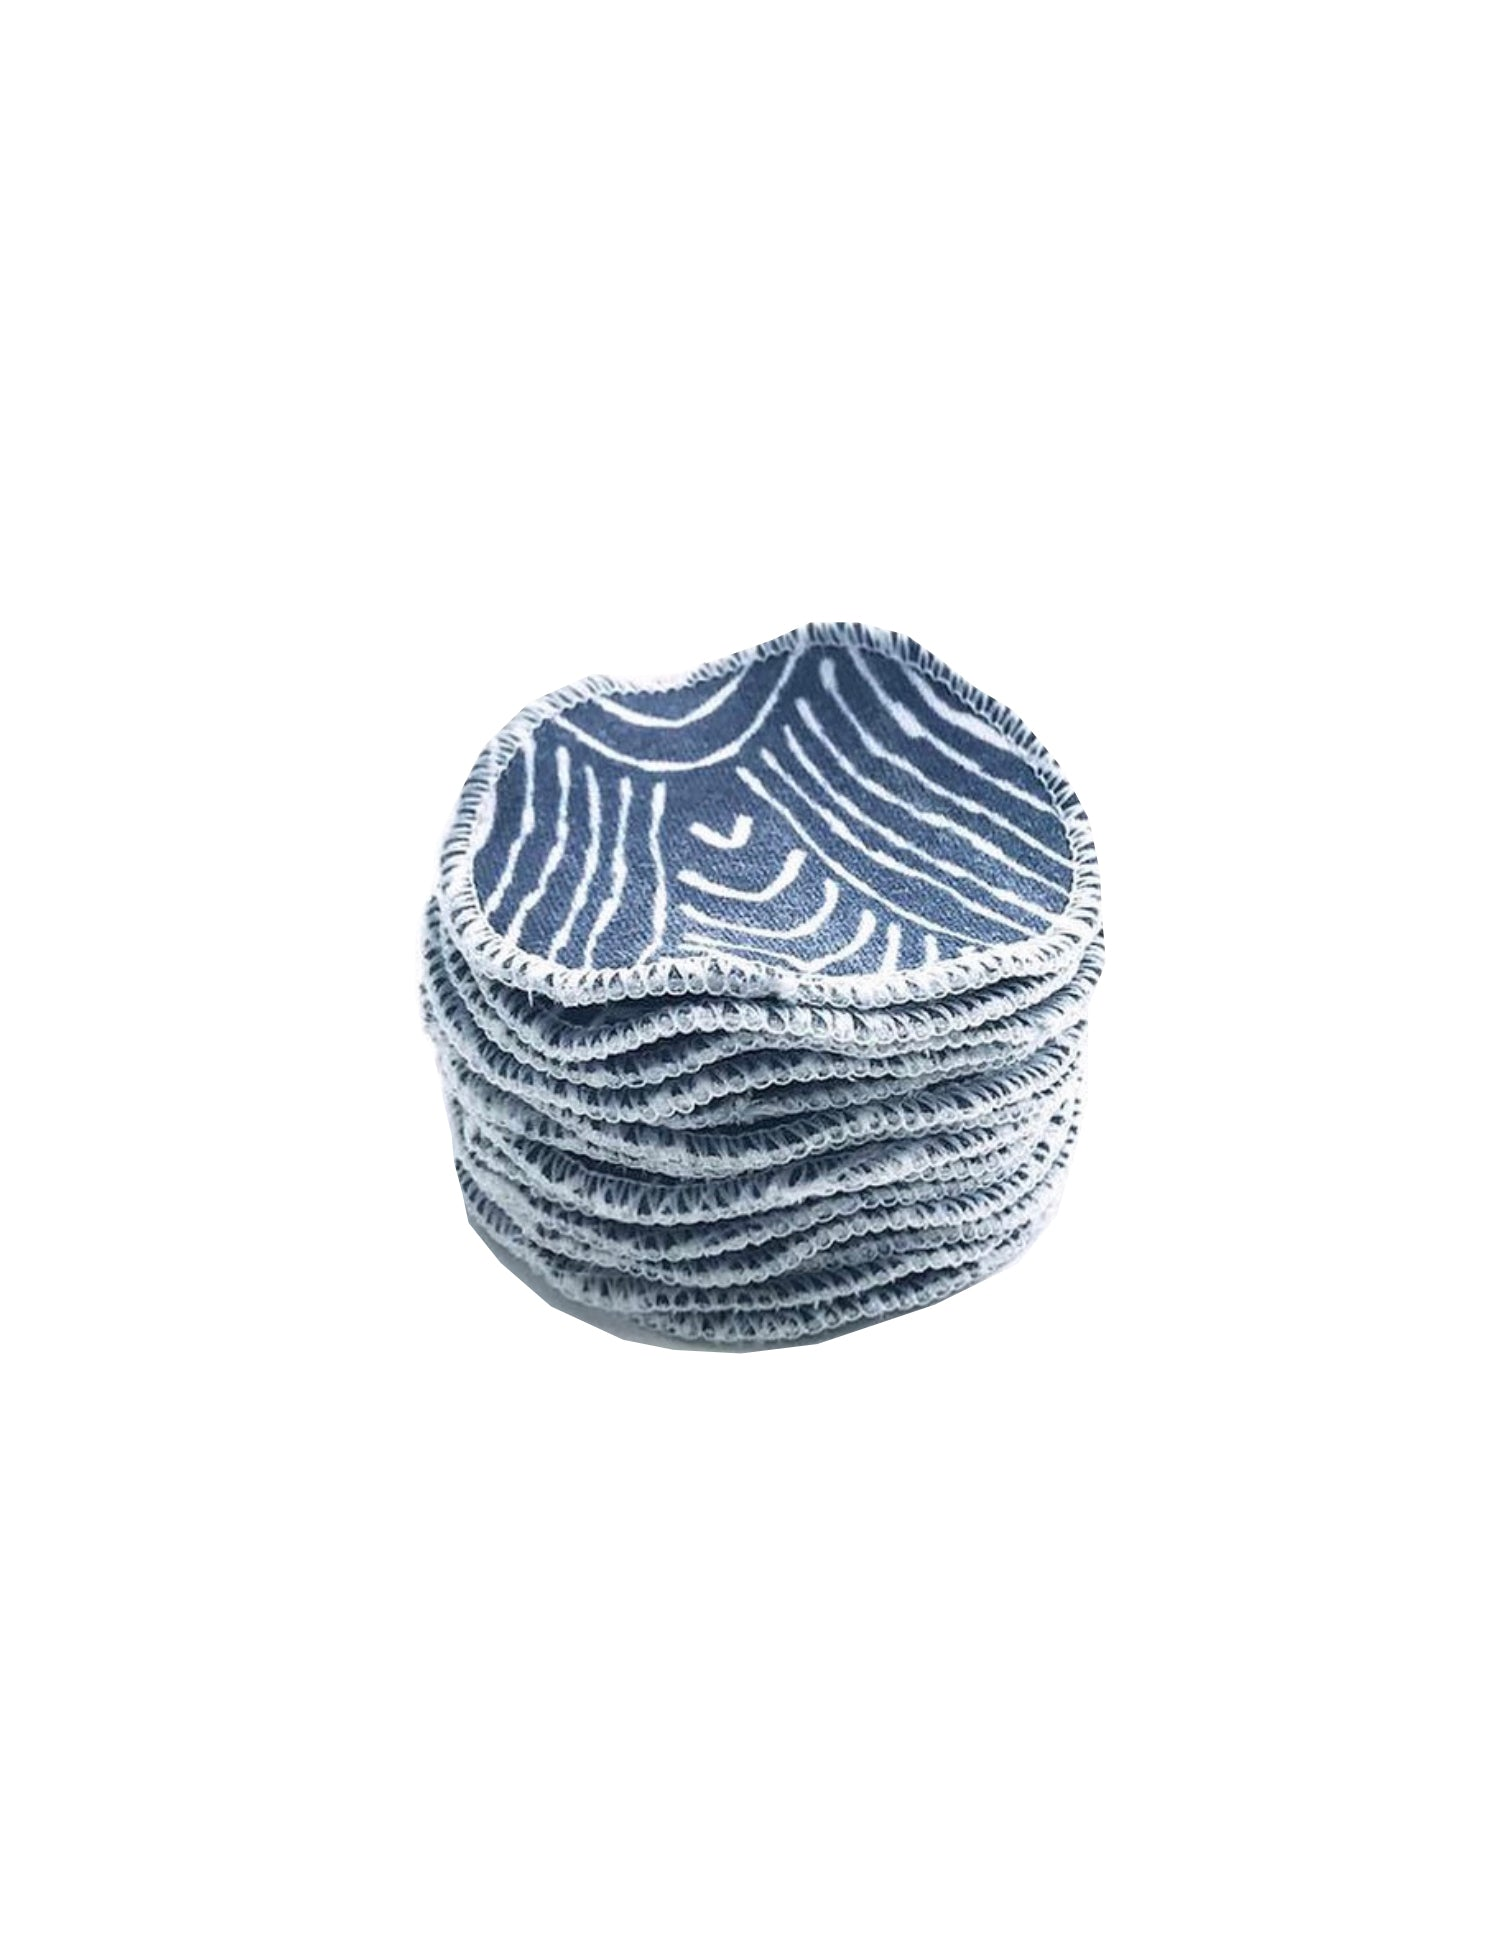 100% Organic Cotton Reusable Rounds - Navy